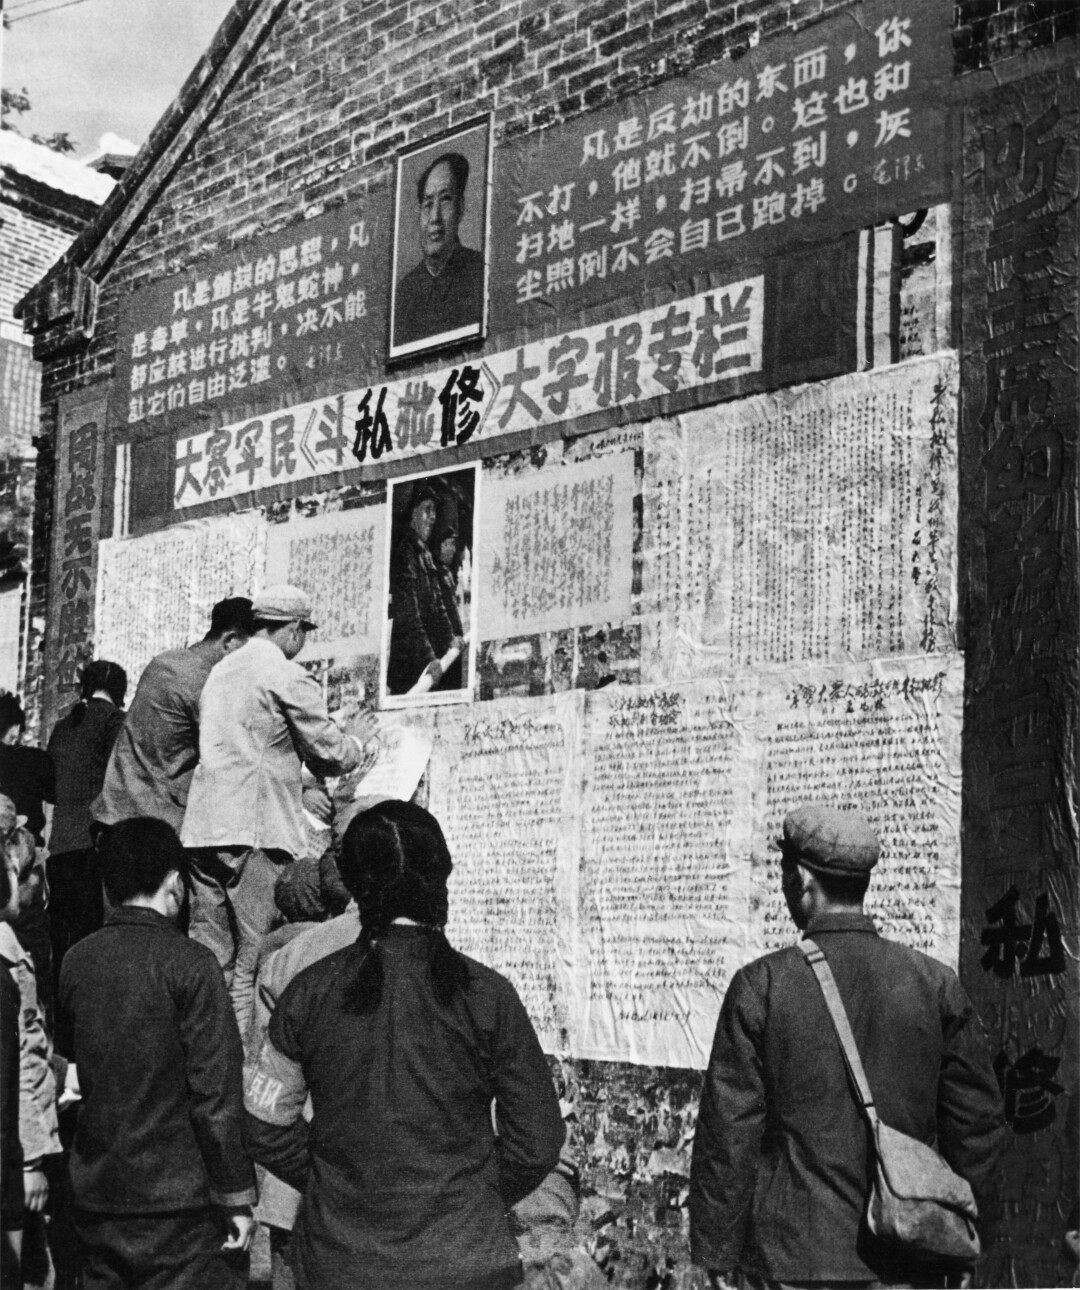 """Big character posters"" are put up by peasants and soldiers, circa 1970."